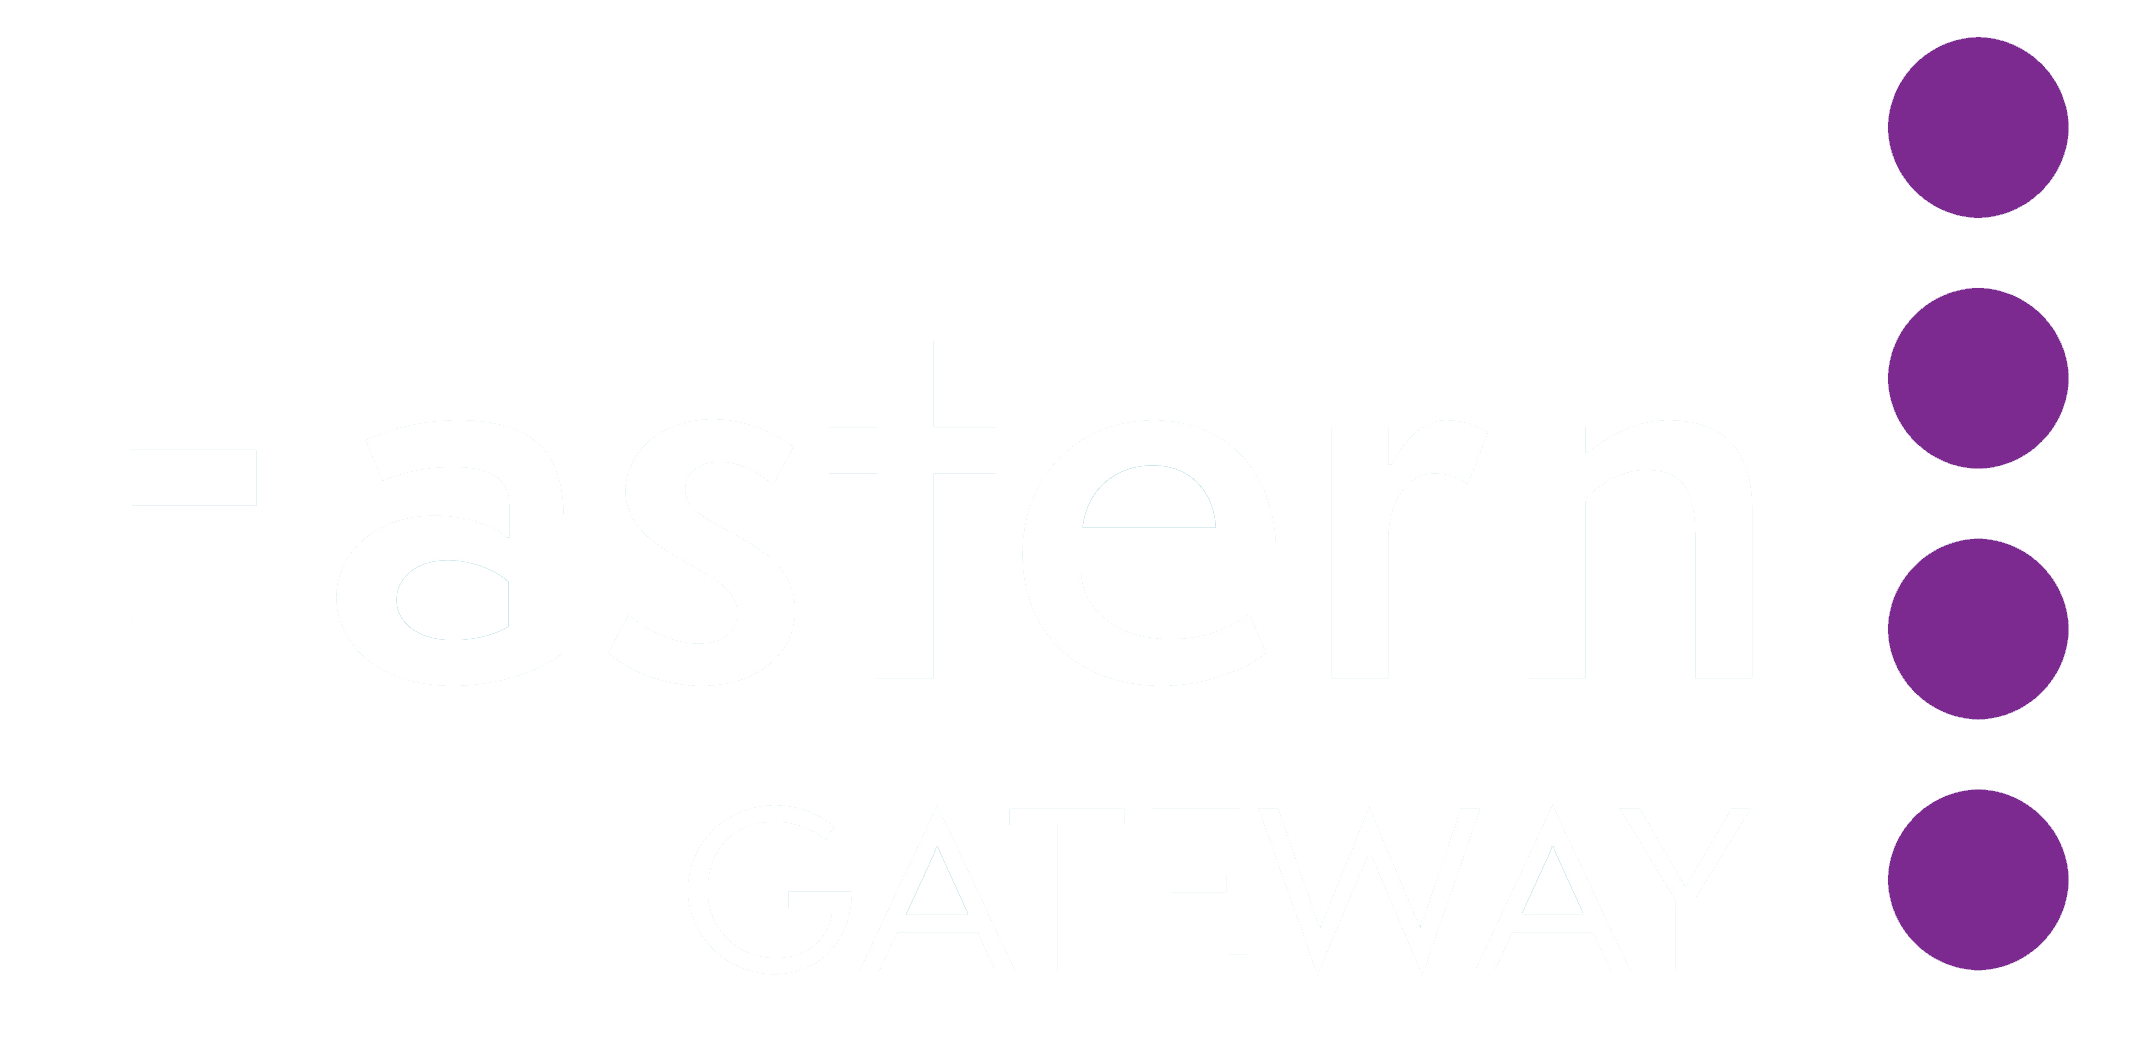 Eastern Gateway text in white next to four vertical purple circles